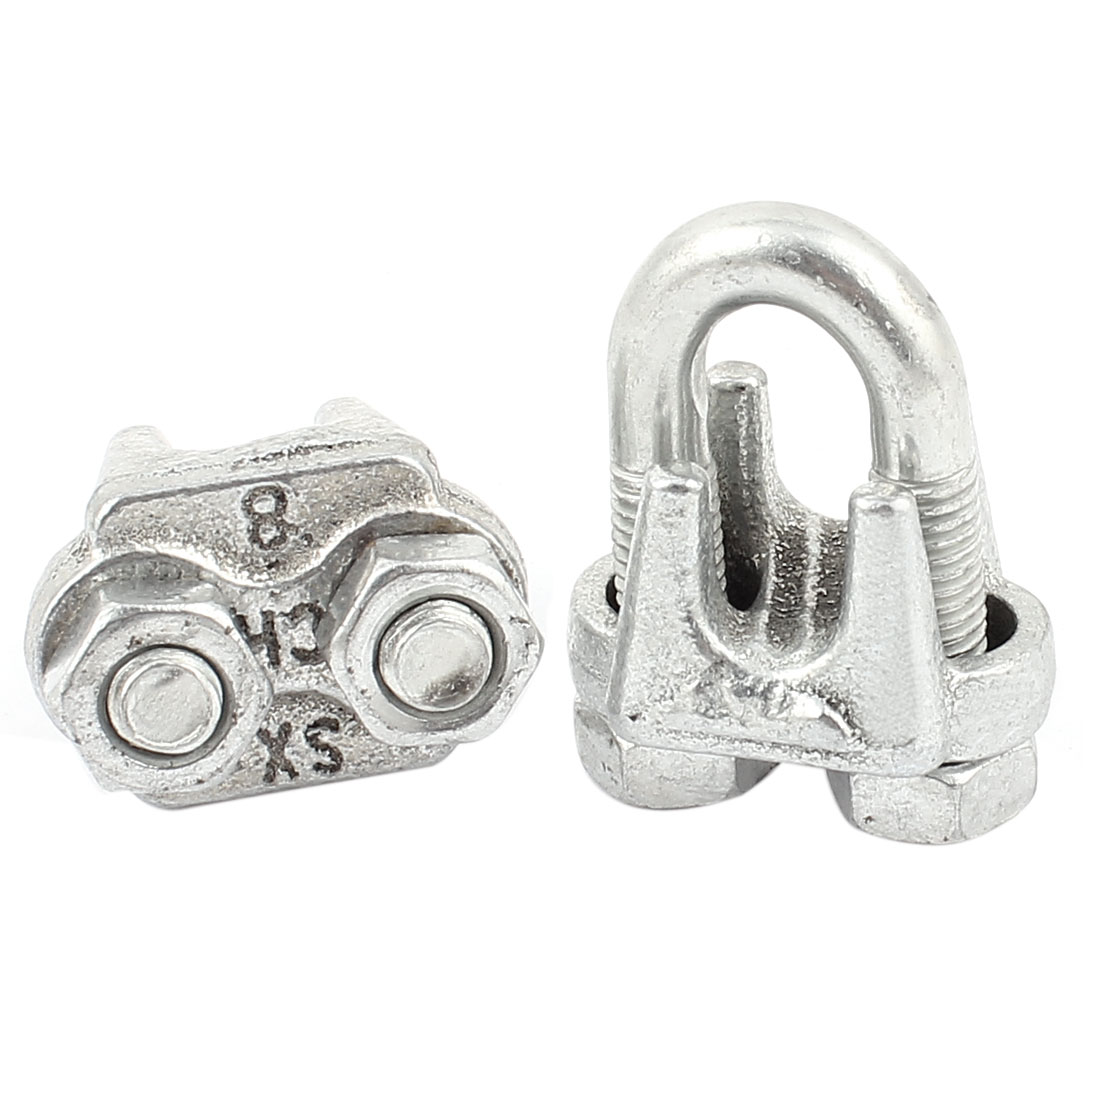 2pcs Silver Tone Metal 12mm Cable Wire Rope Clamp Clip U Bolt Saddle Fastener